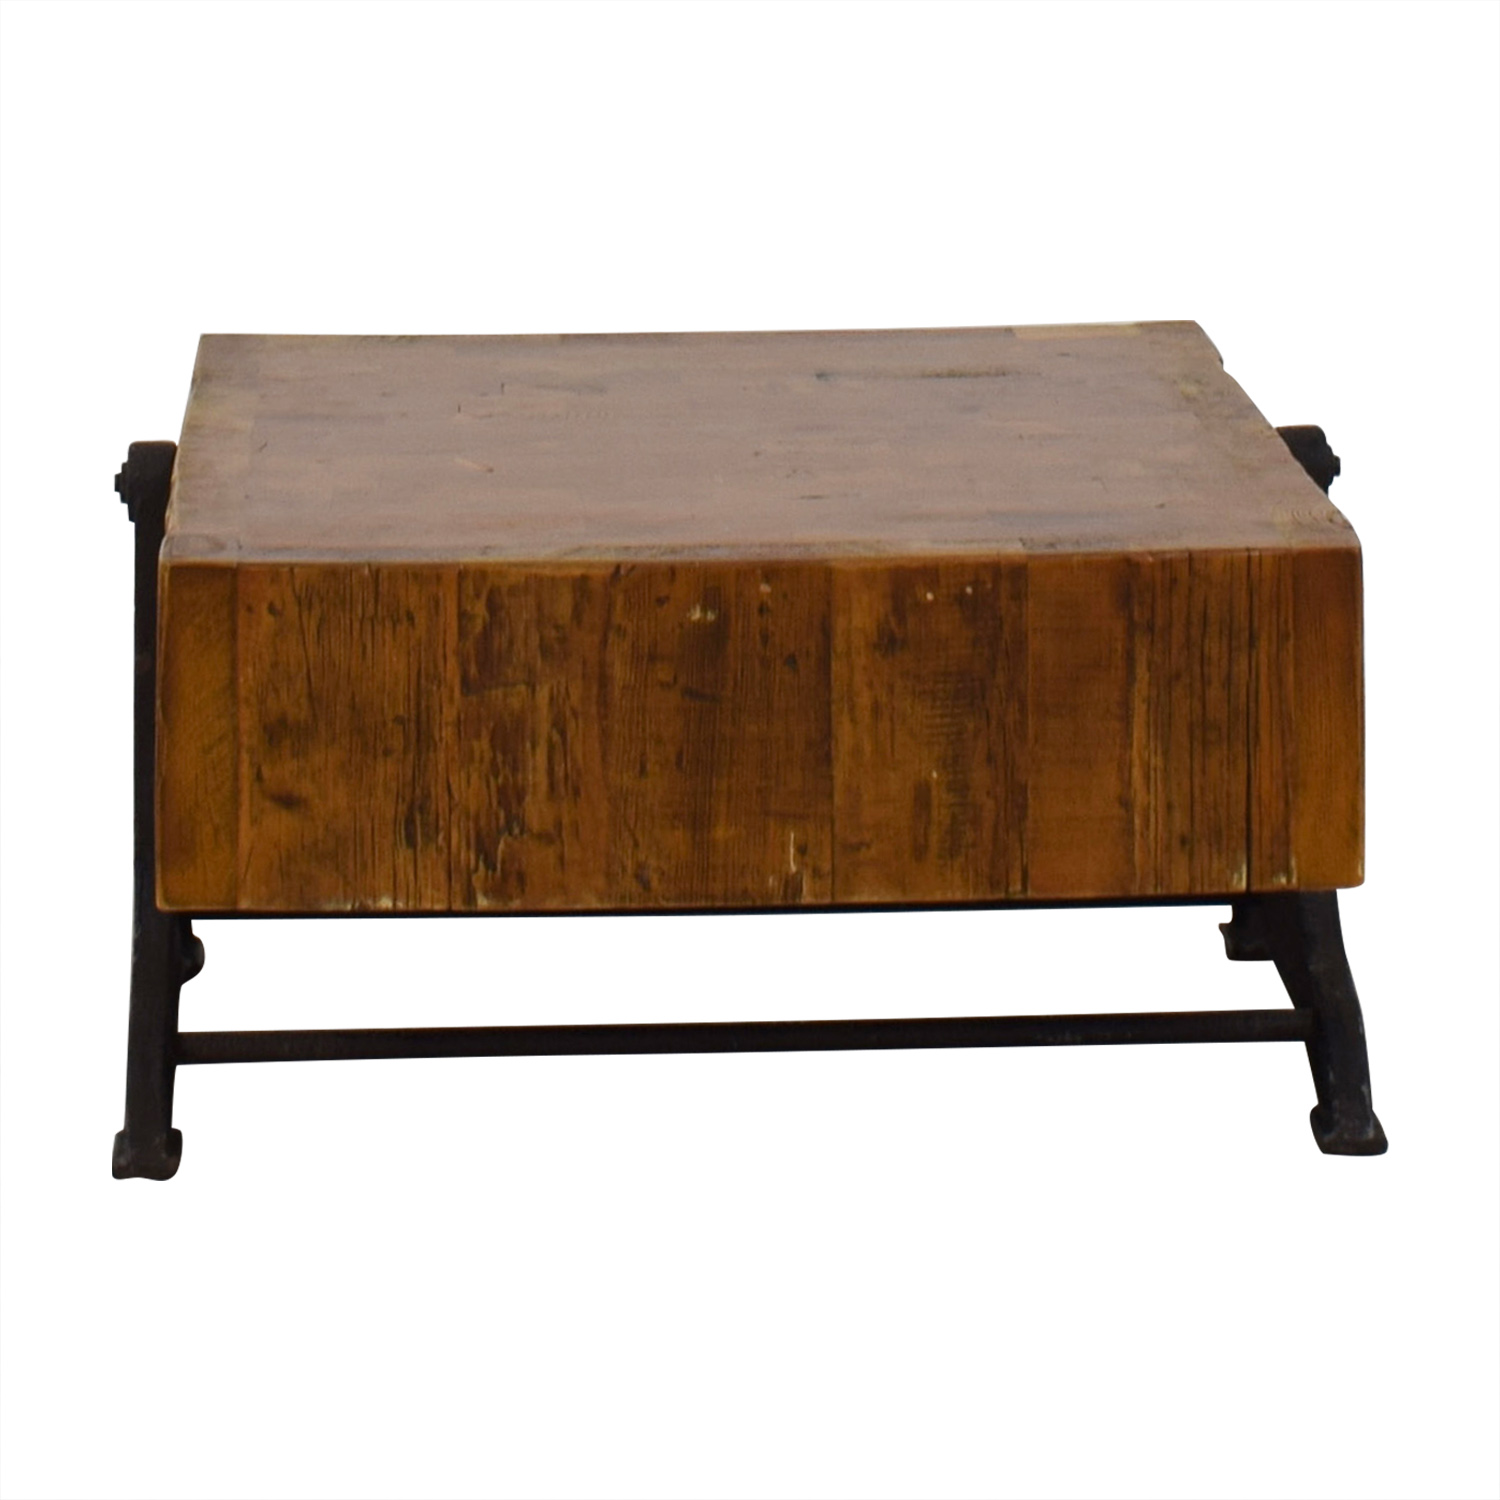 Restoration Hardware Reclaimed Russian Industrial Coffee Table Restoration Hardware